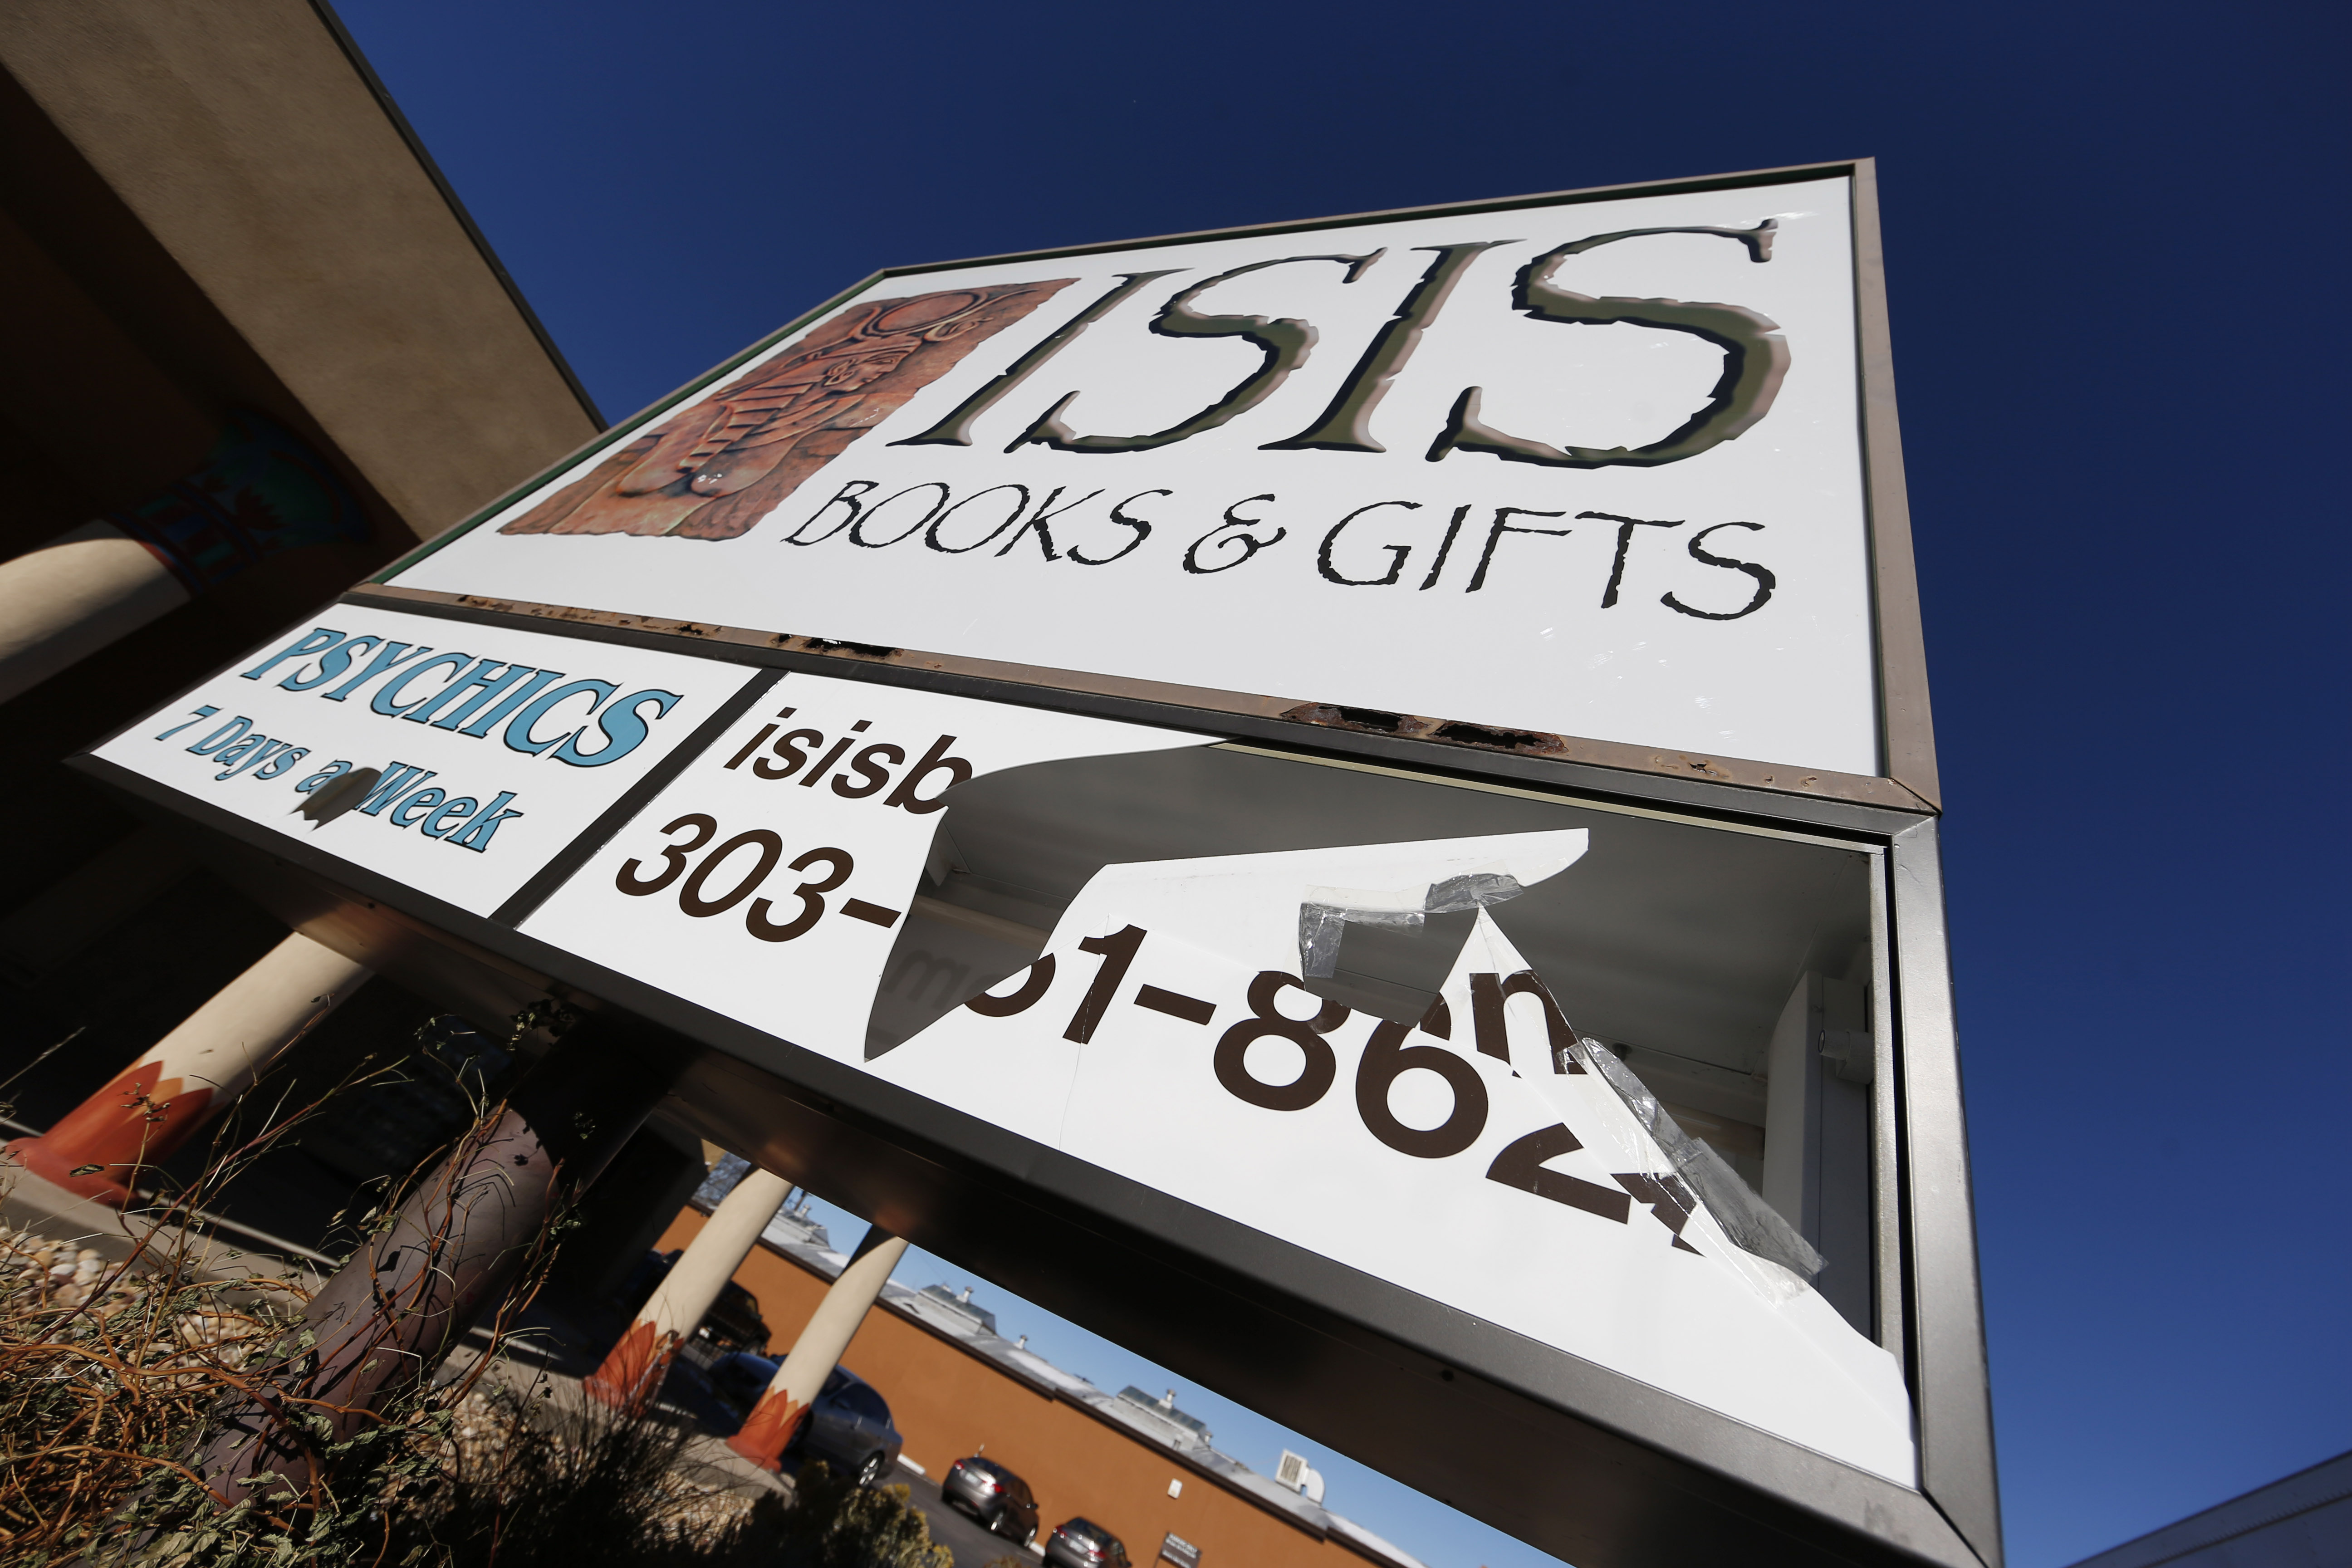 A panel of the sign outside Isis Books and Gifts is shown broken on Nov. 18, 2015, in Englewood, Colo.